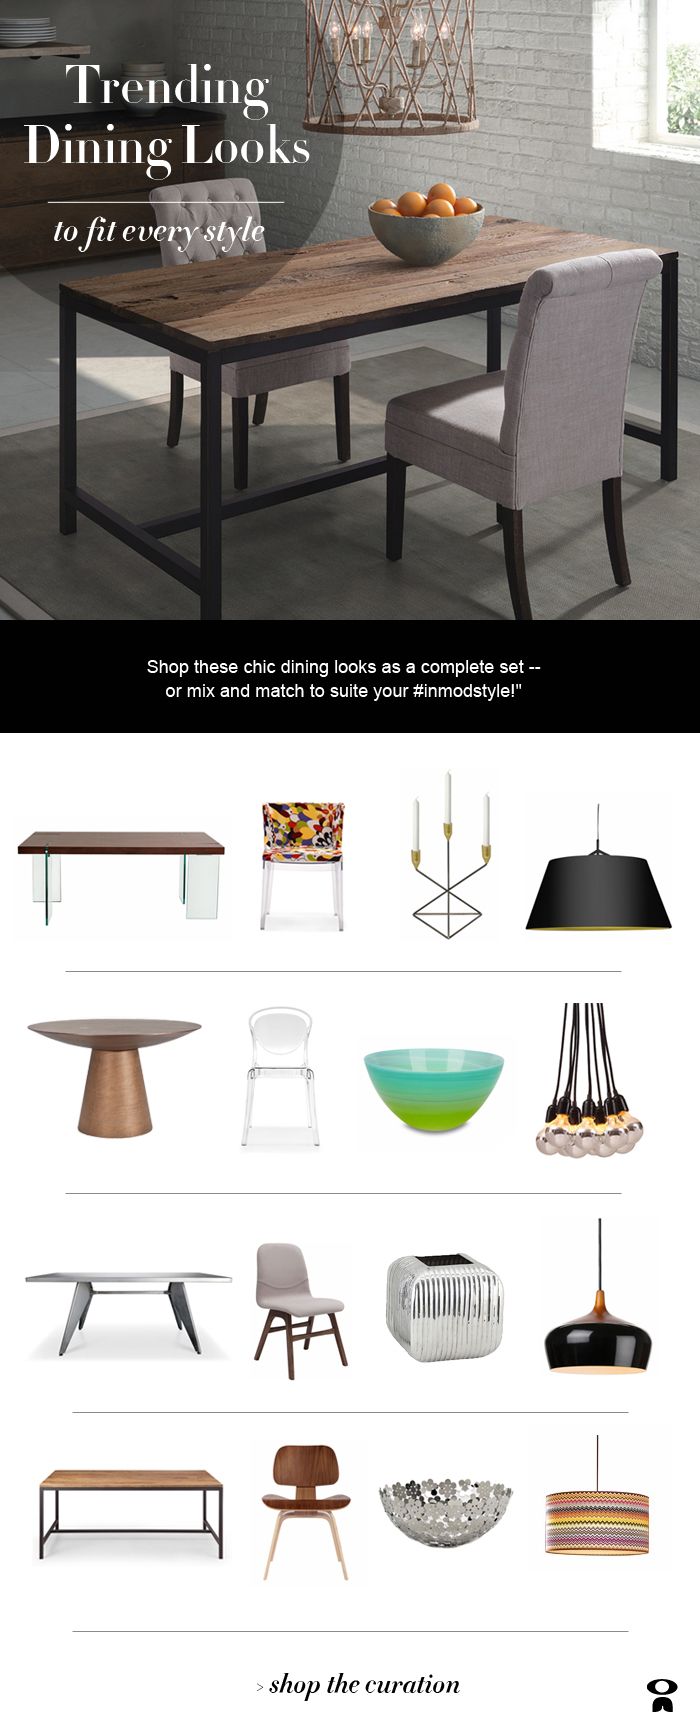 Shop Trending Dining Looks at Inmod